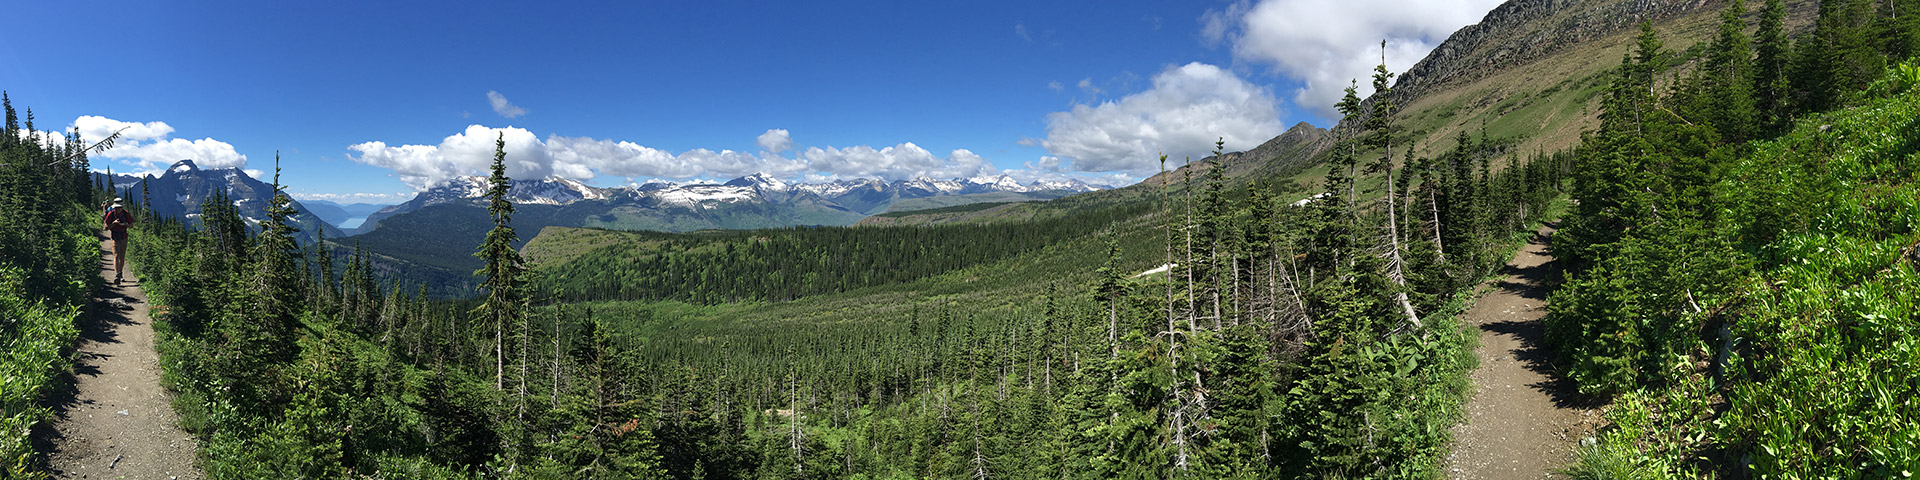 Panoramic views from the Highline hike in Glacier National Park, Montana